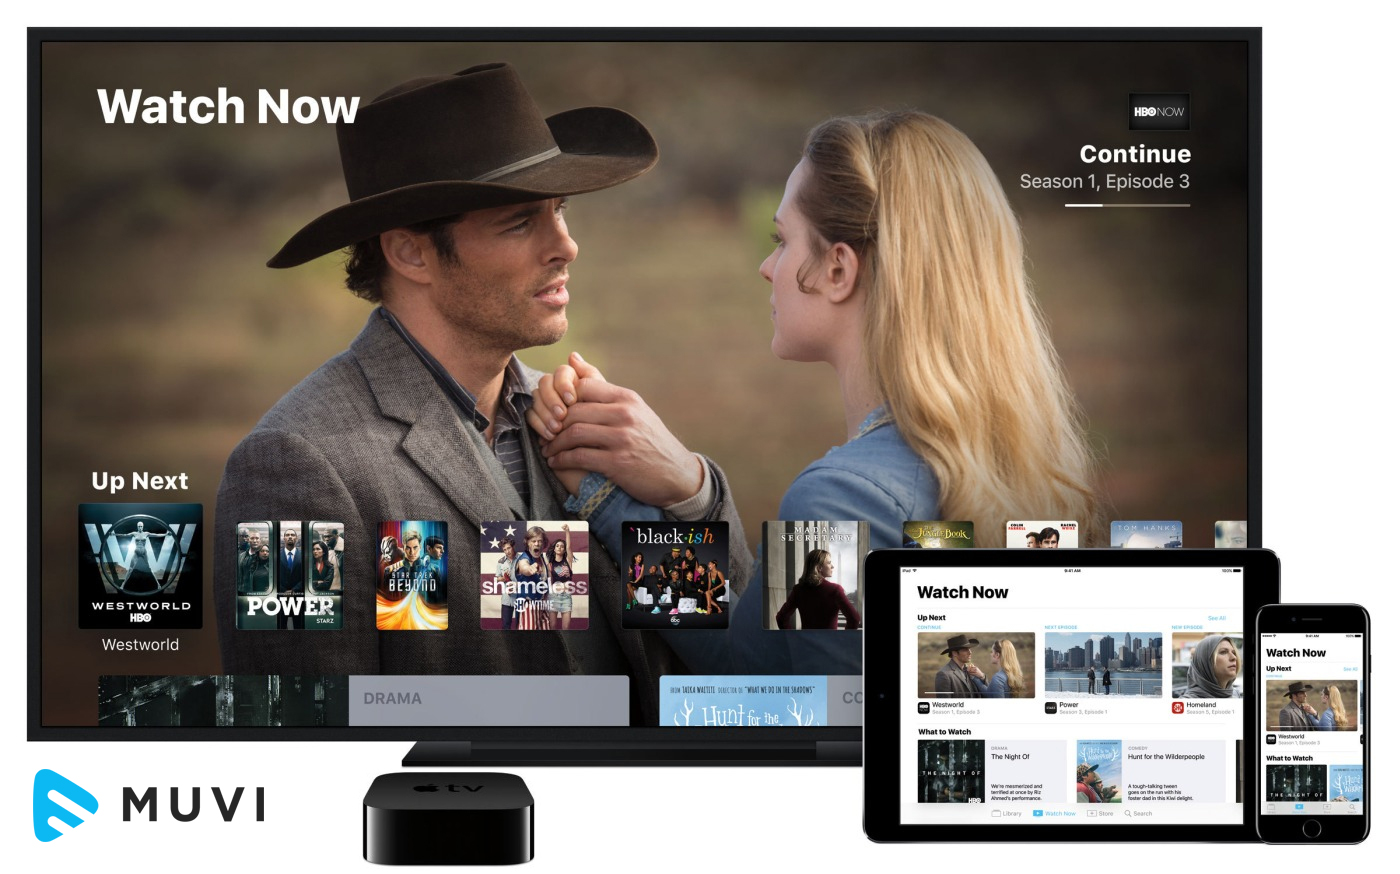 Apple TV brings A Unified Approach to Watching TV